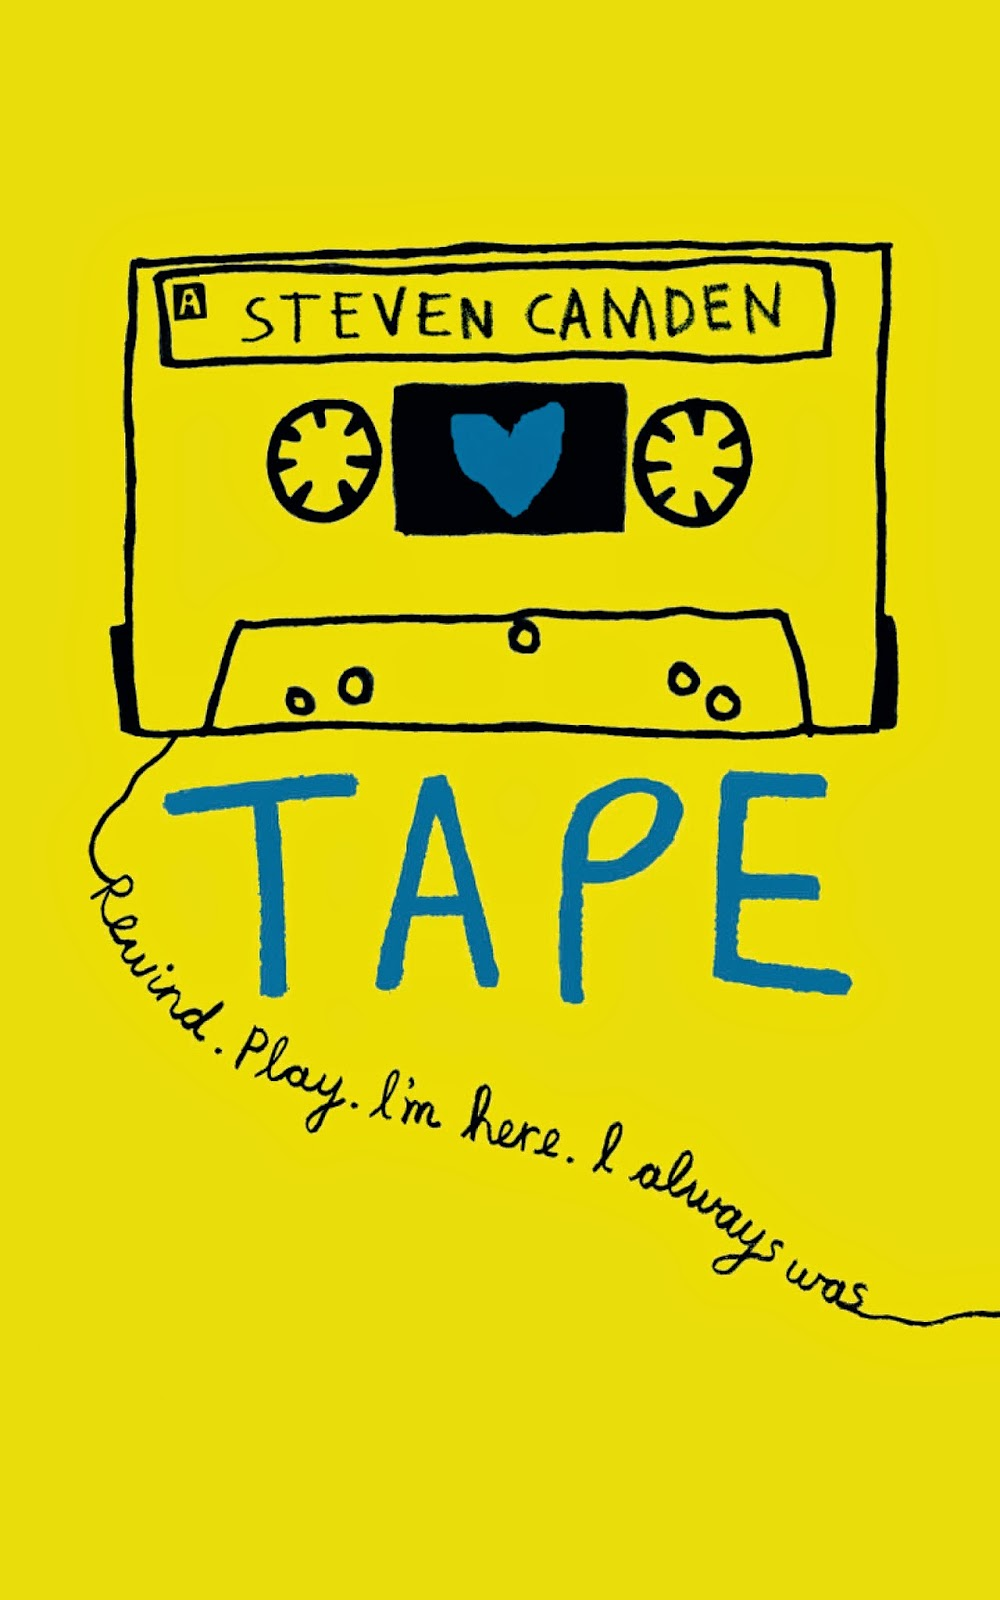 Tape by Steven Camden